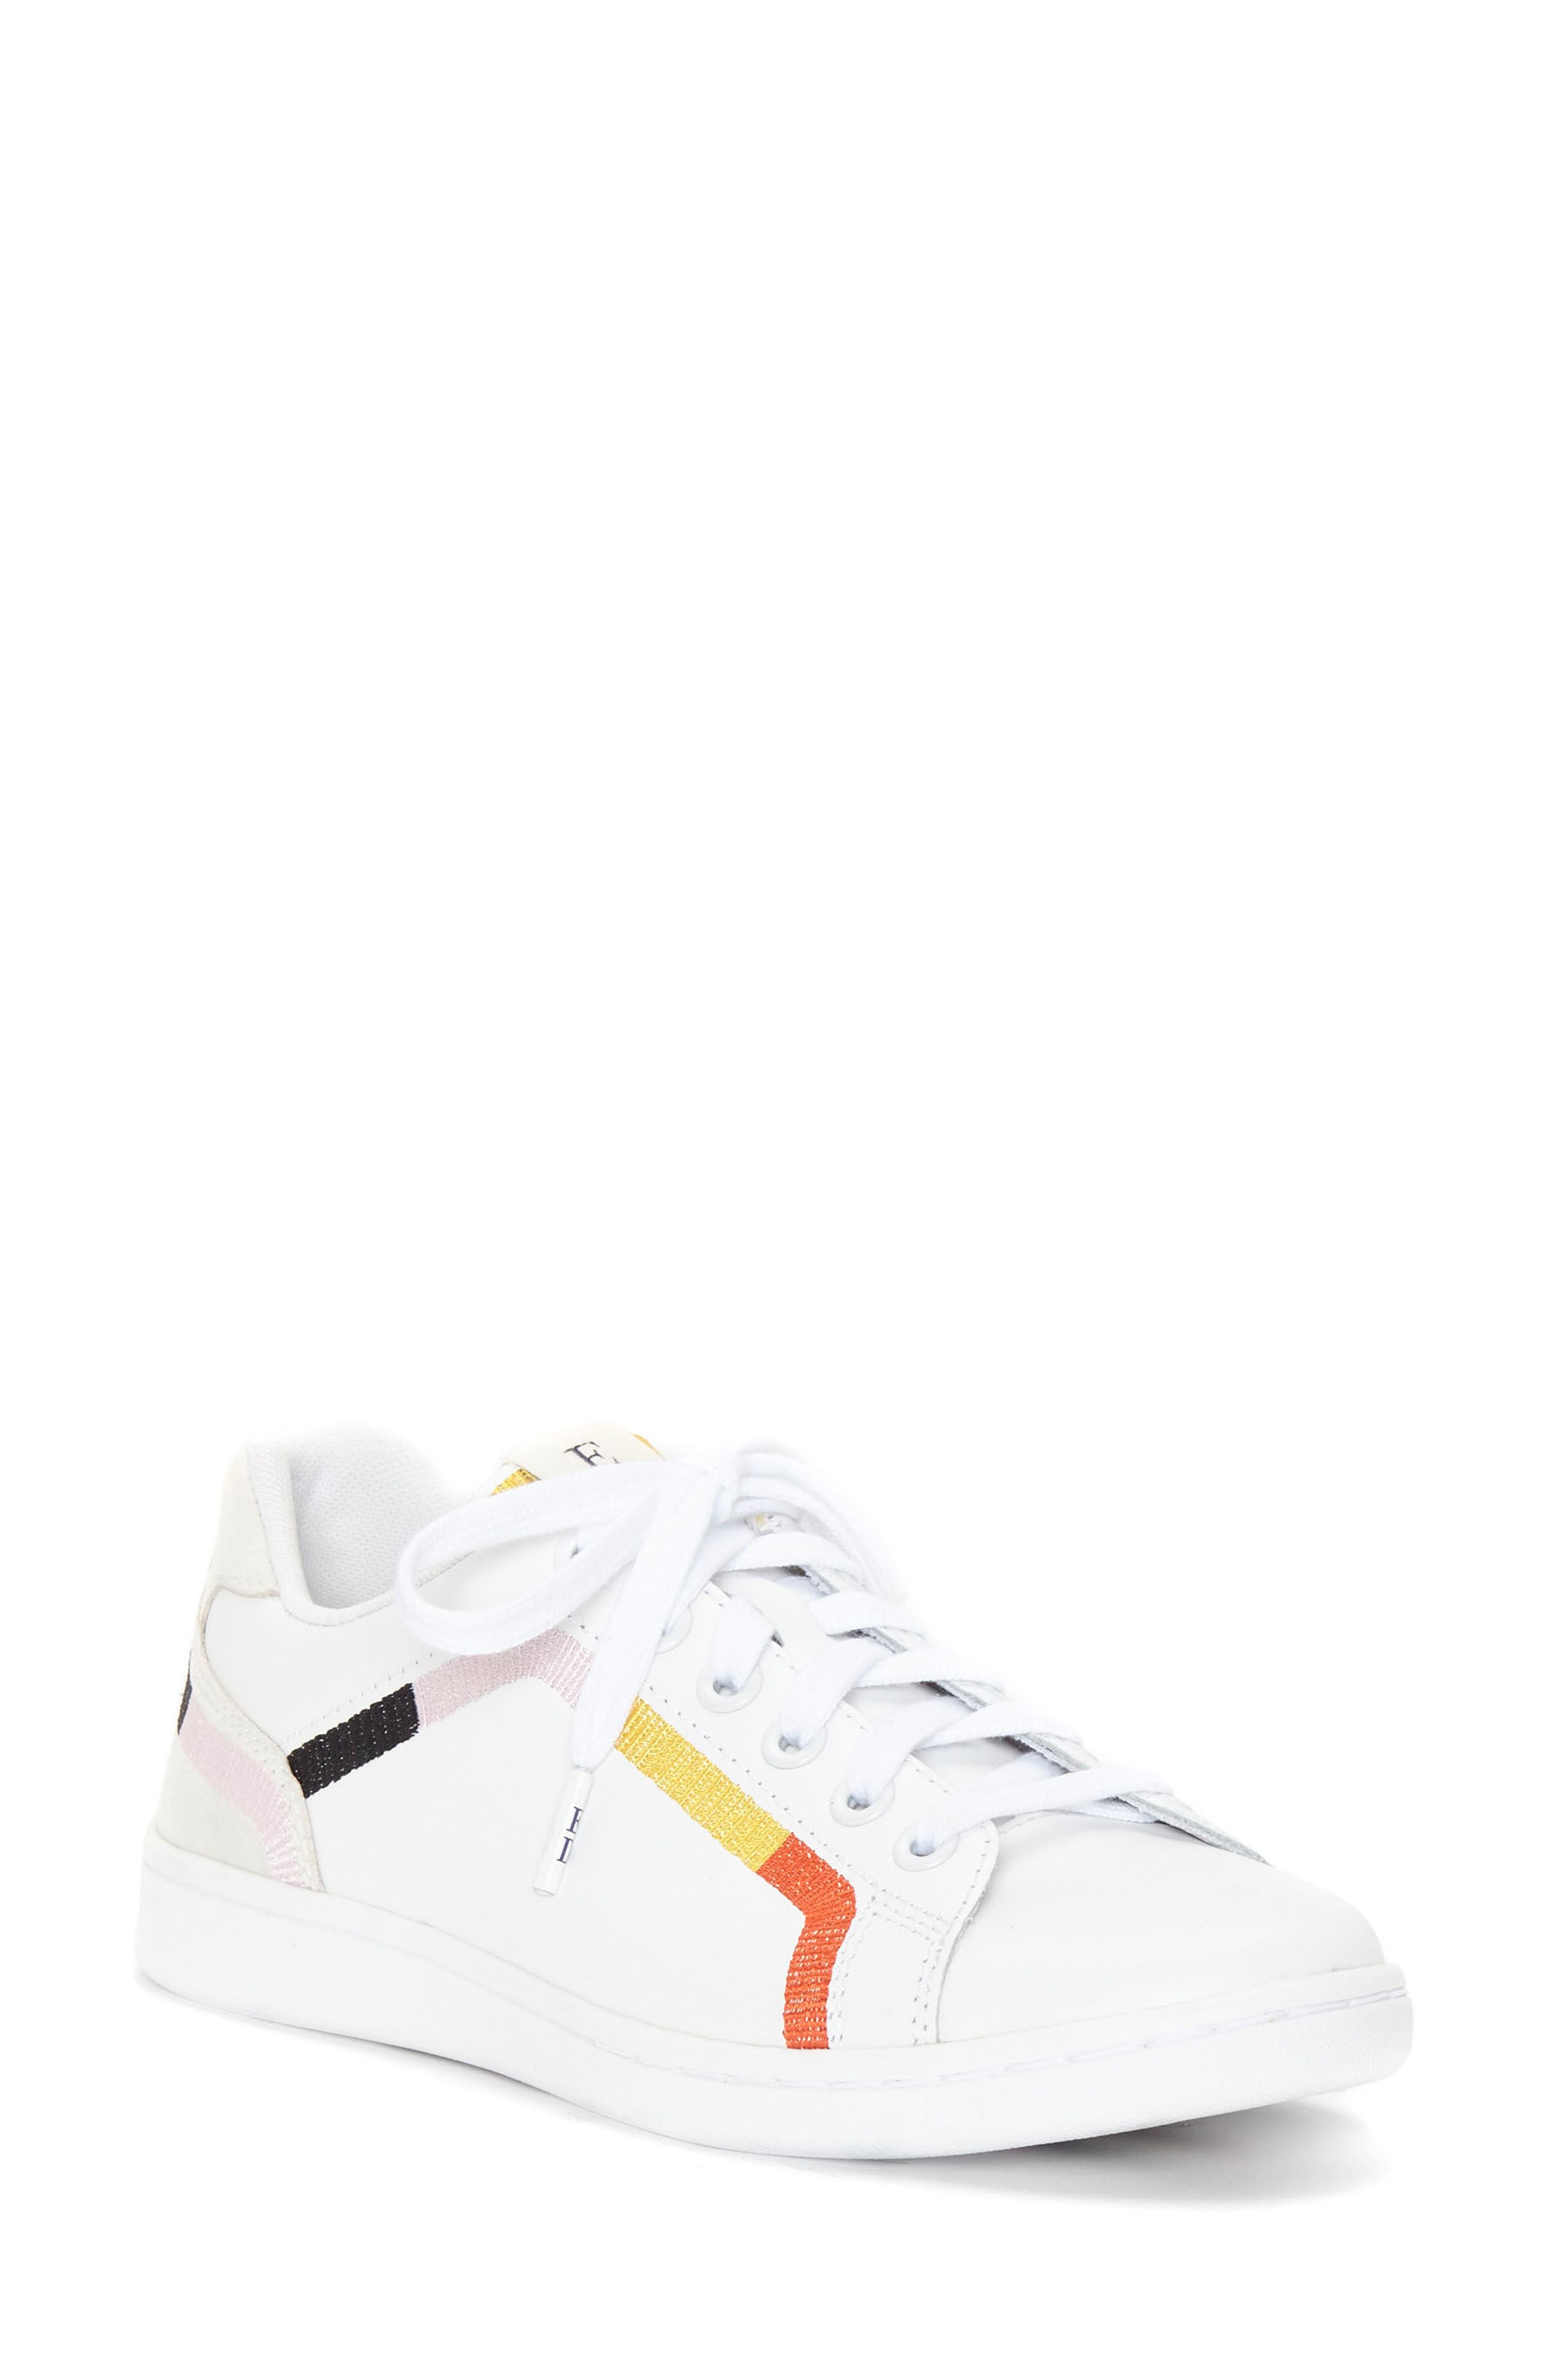 Costella Sneaker,                             Main thumbnail 1, color,                             110